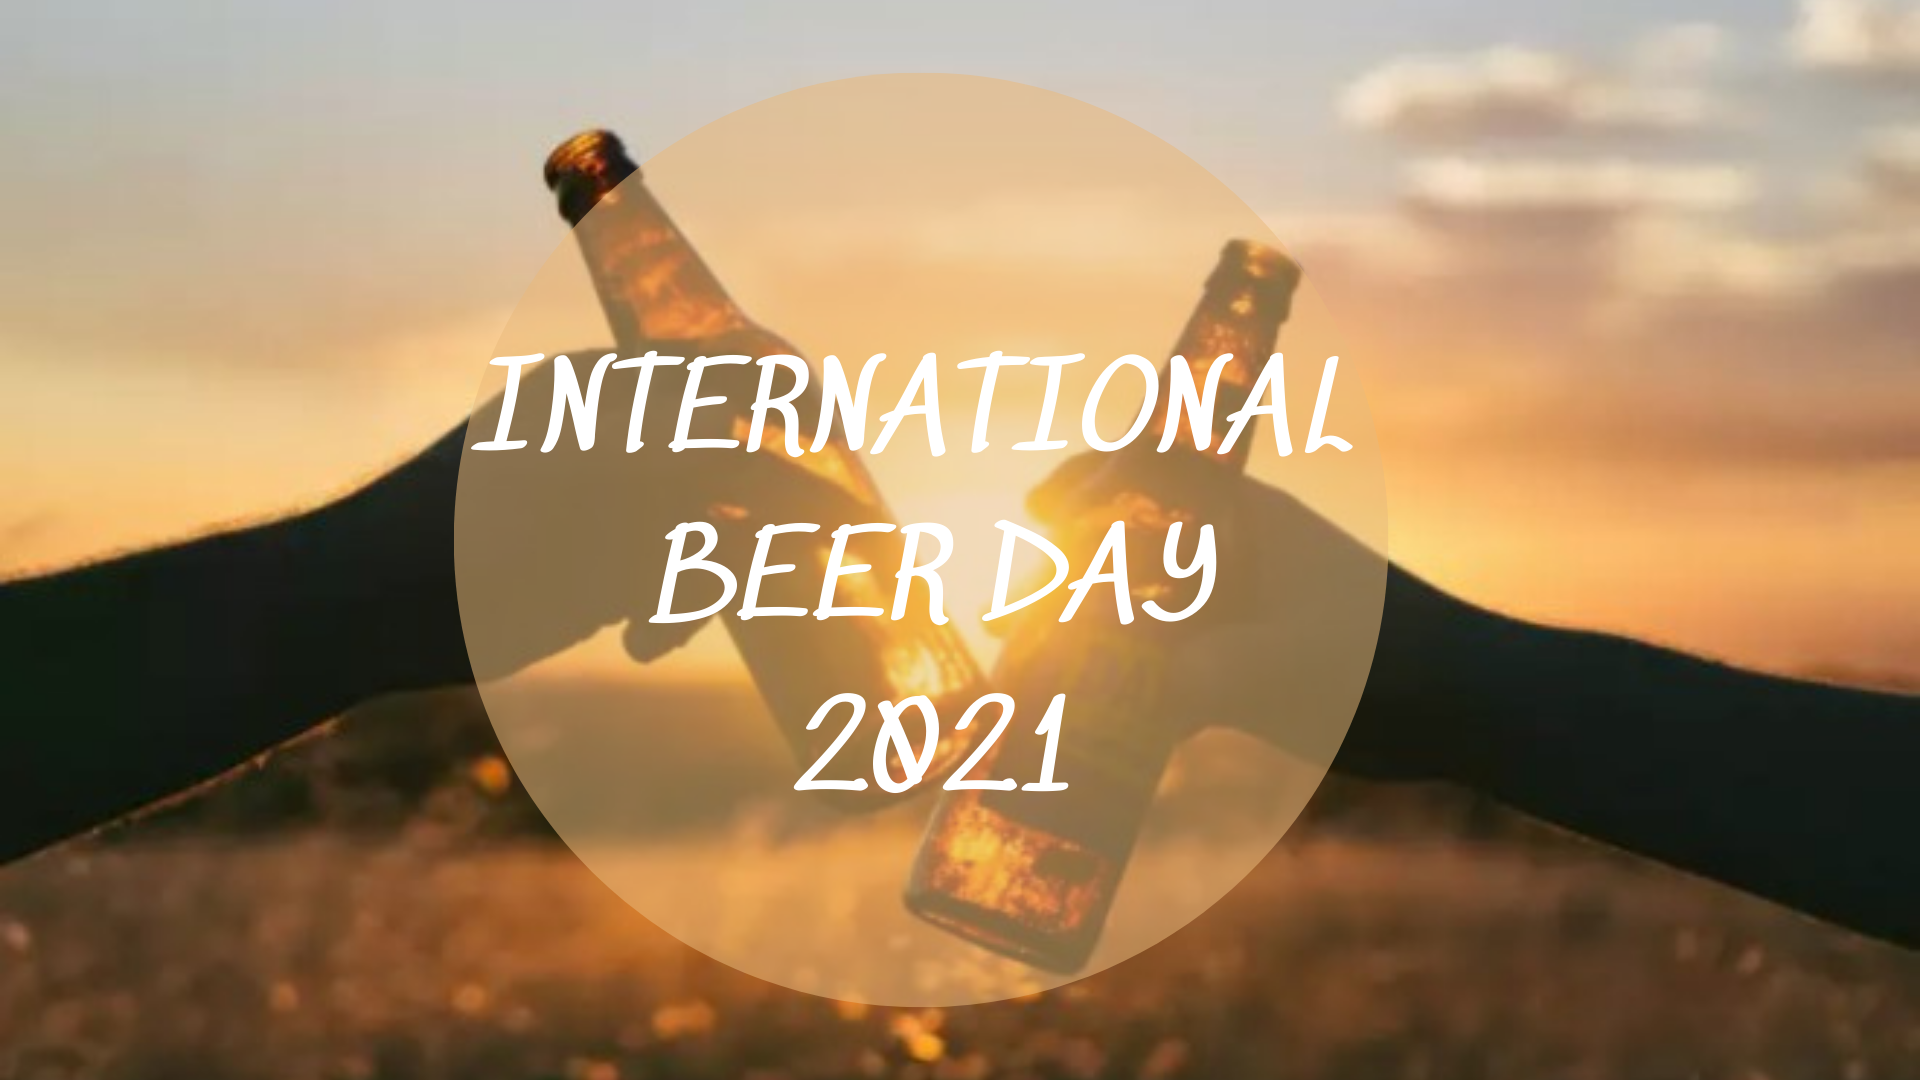 International Beer Day: History, Significance and Celebration